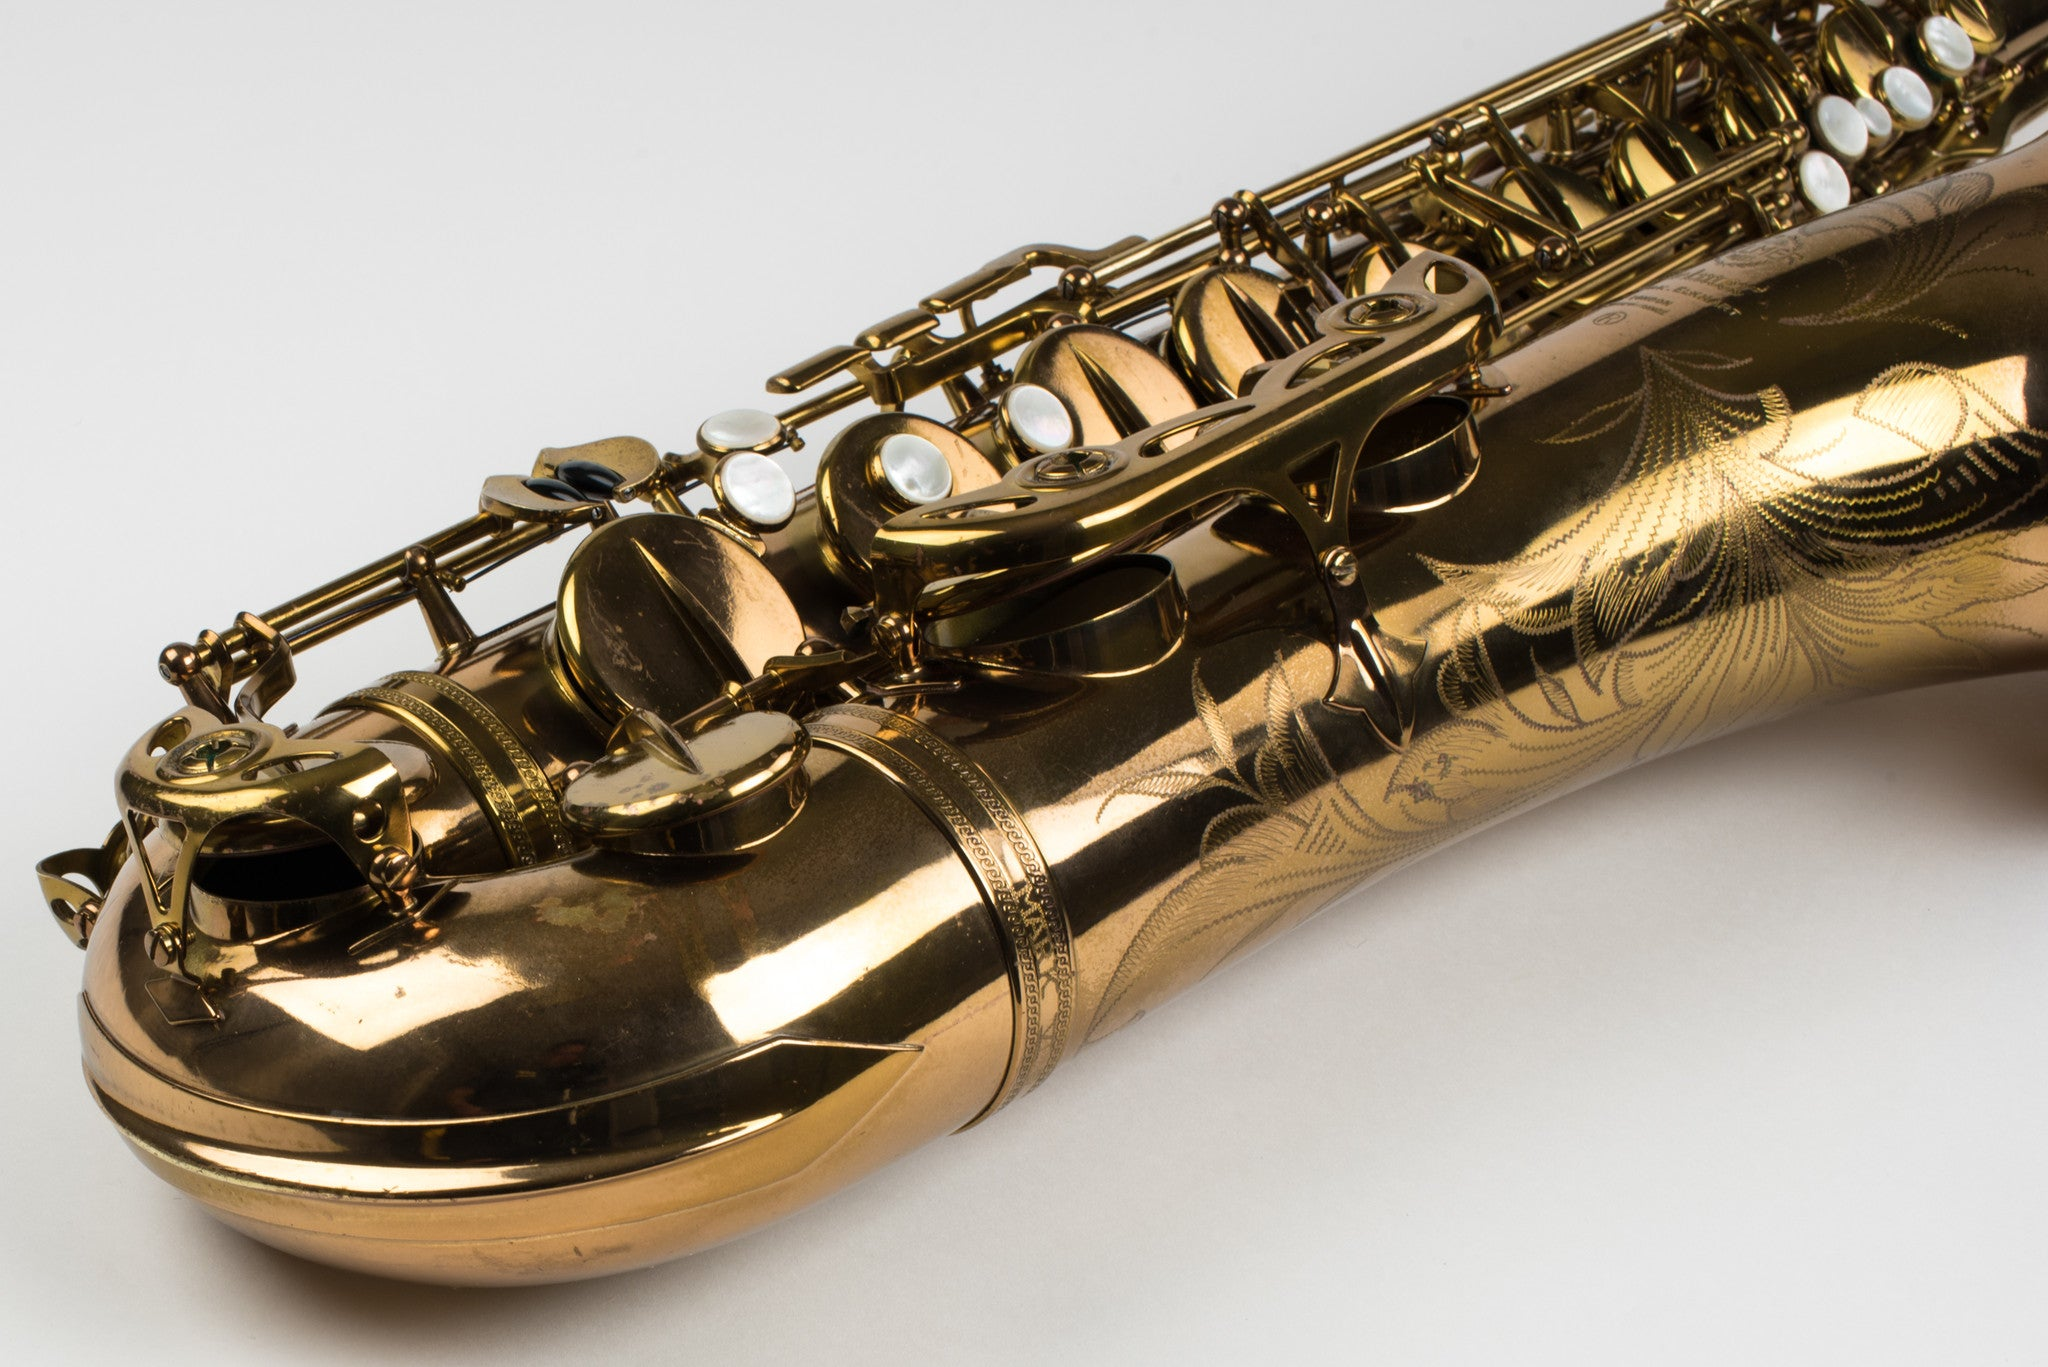 Selmer Mark VI Tenor Saxophone 121,xxx, 99% Original Lacquer, Top Overhaul